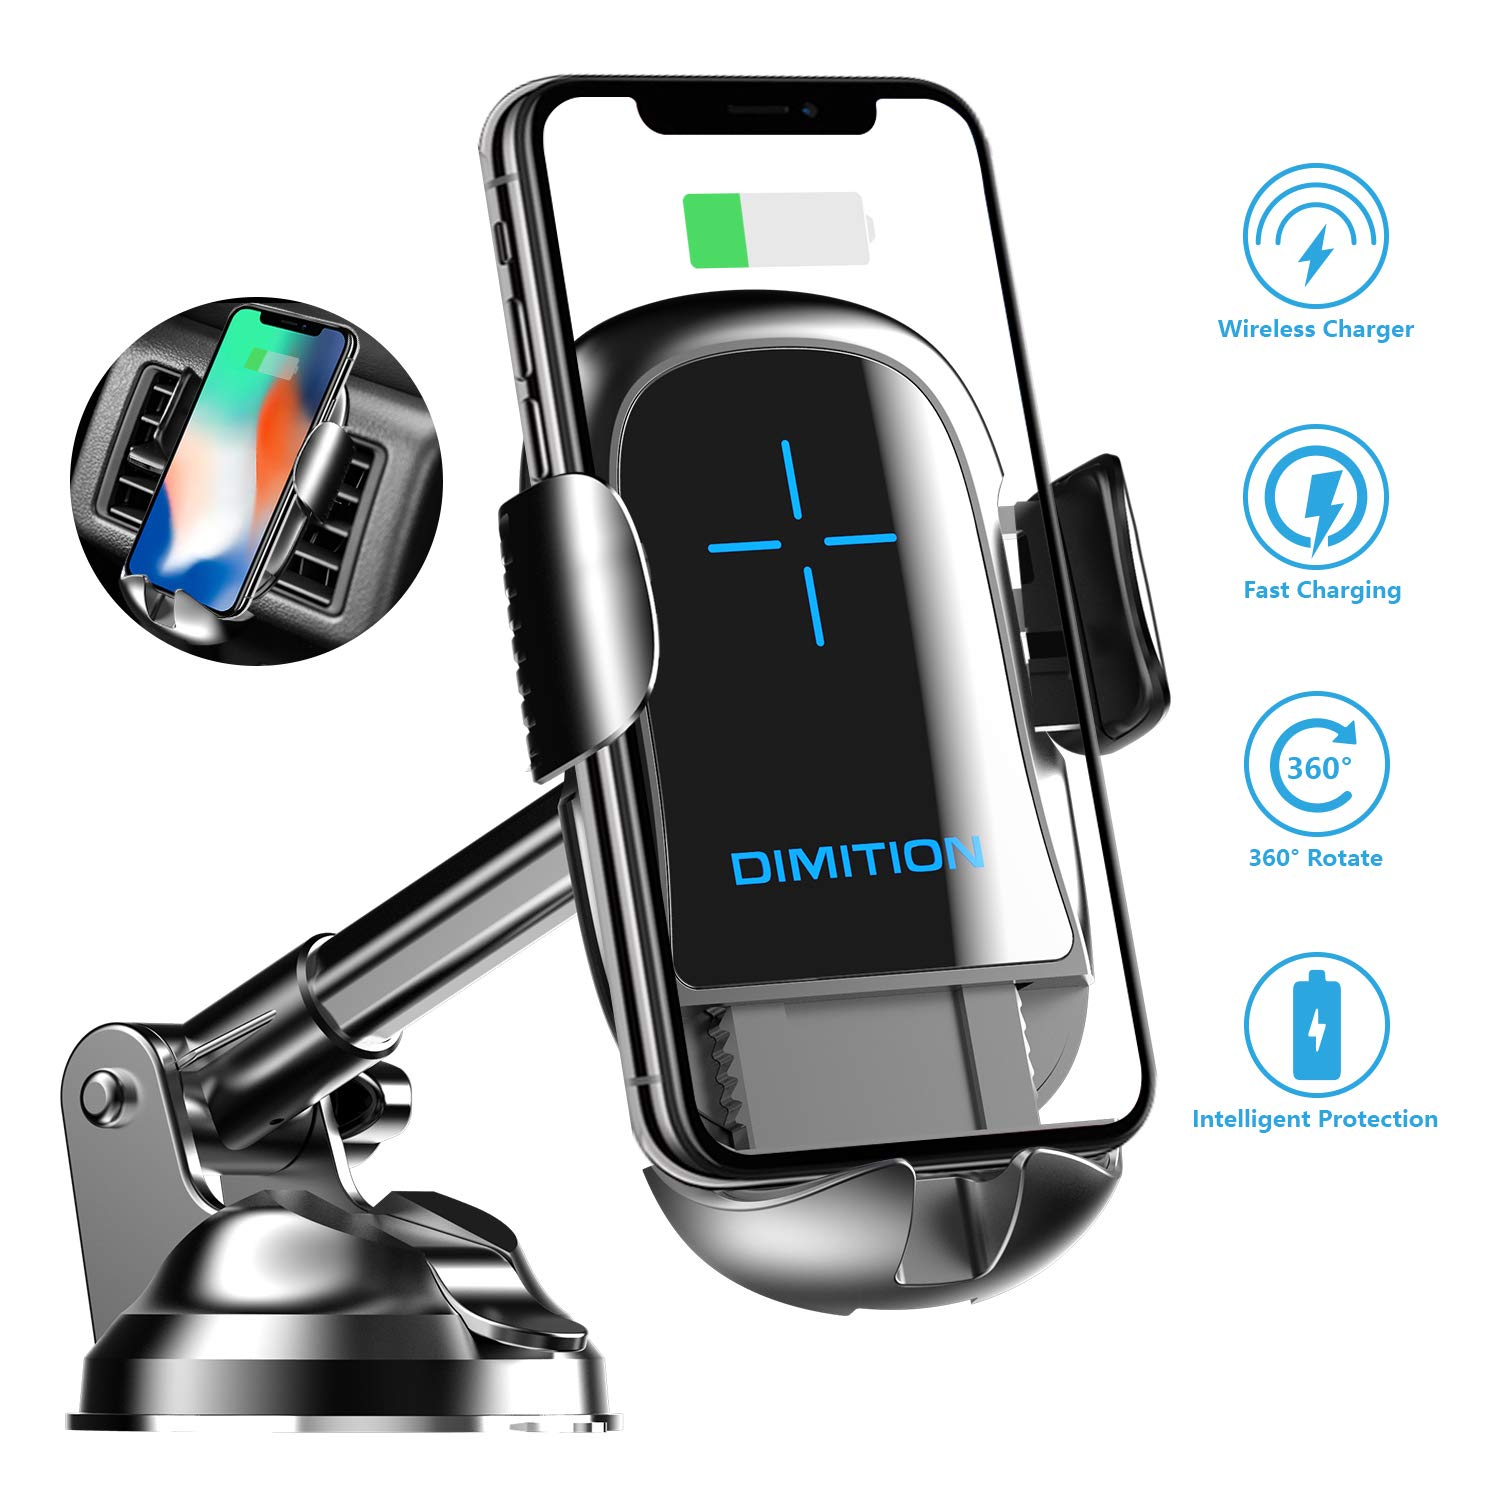 Cell Phone Holder for Car, Automatic Clamping Car Phone Mount Qi Wireless Car Charger Dashboard/Air Vent Car Mount Compatible with iPhone 8 Plus XS Max X 11 Pro, Samsung Galaxy S9 S10 Plus Note 9 10 by DM